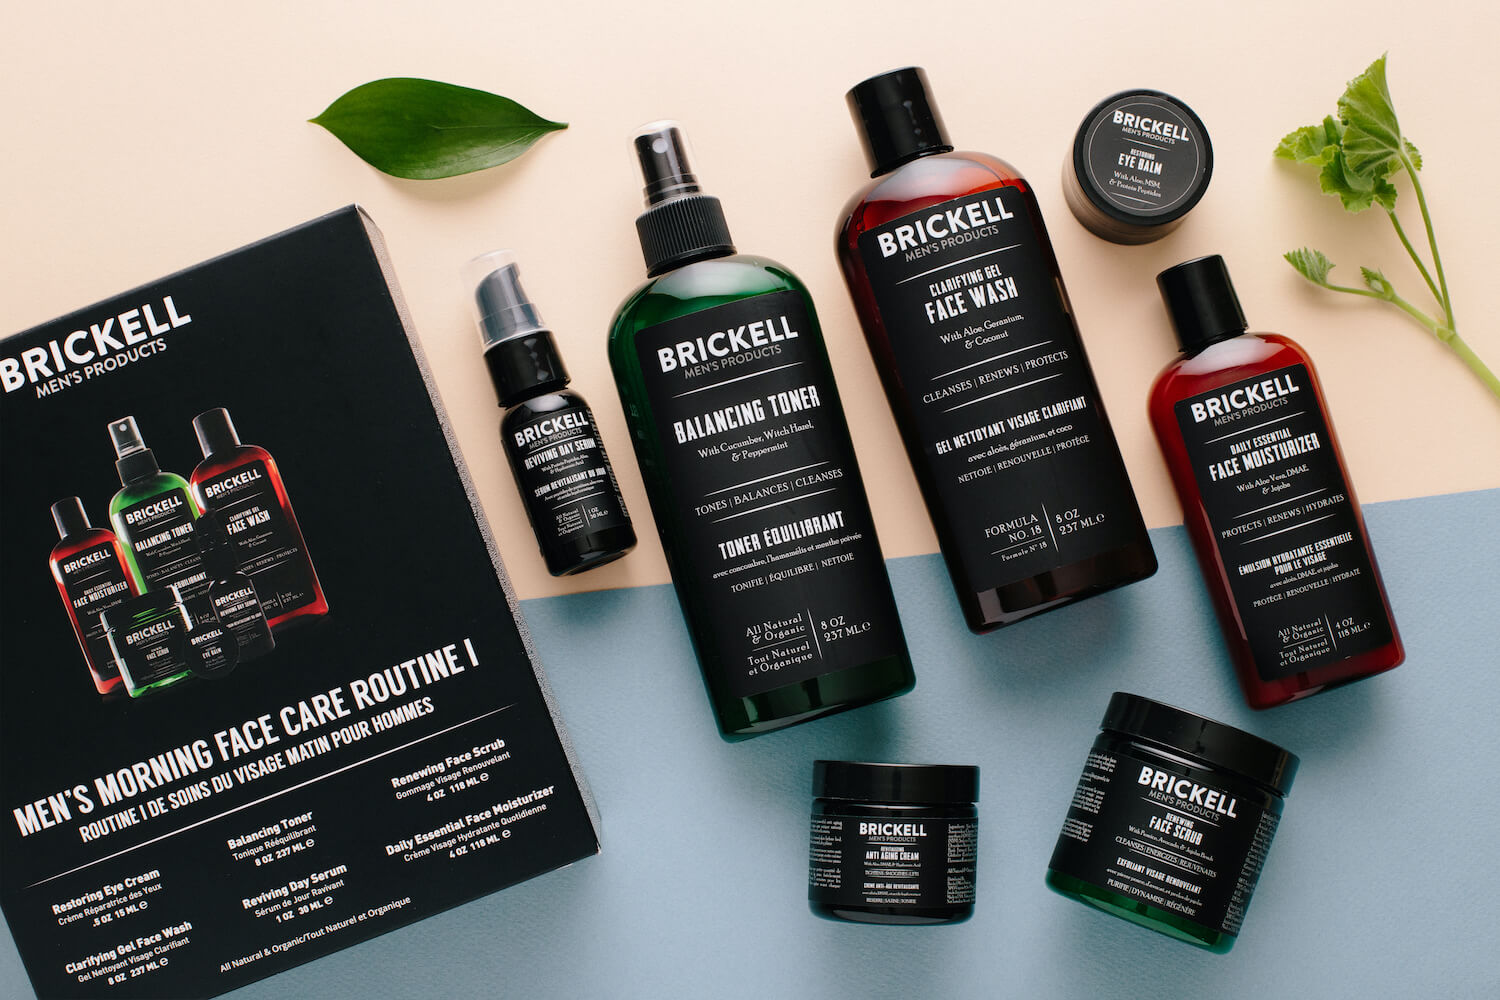 https://brickellmensproducts.com/products/mens-morning-face-care-routine-i